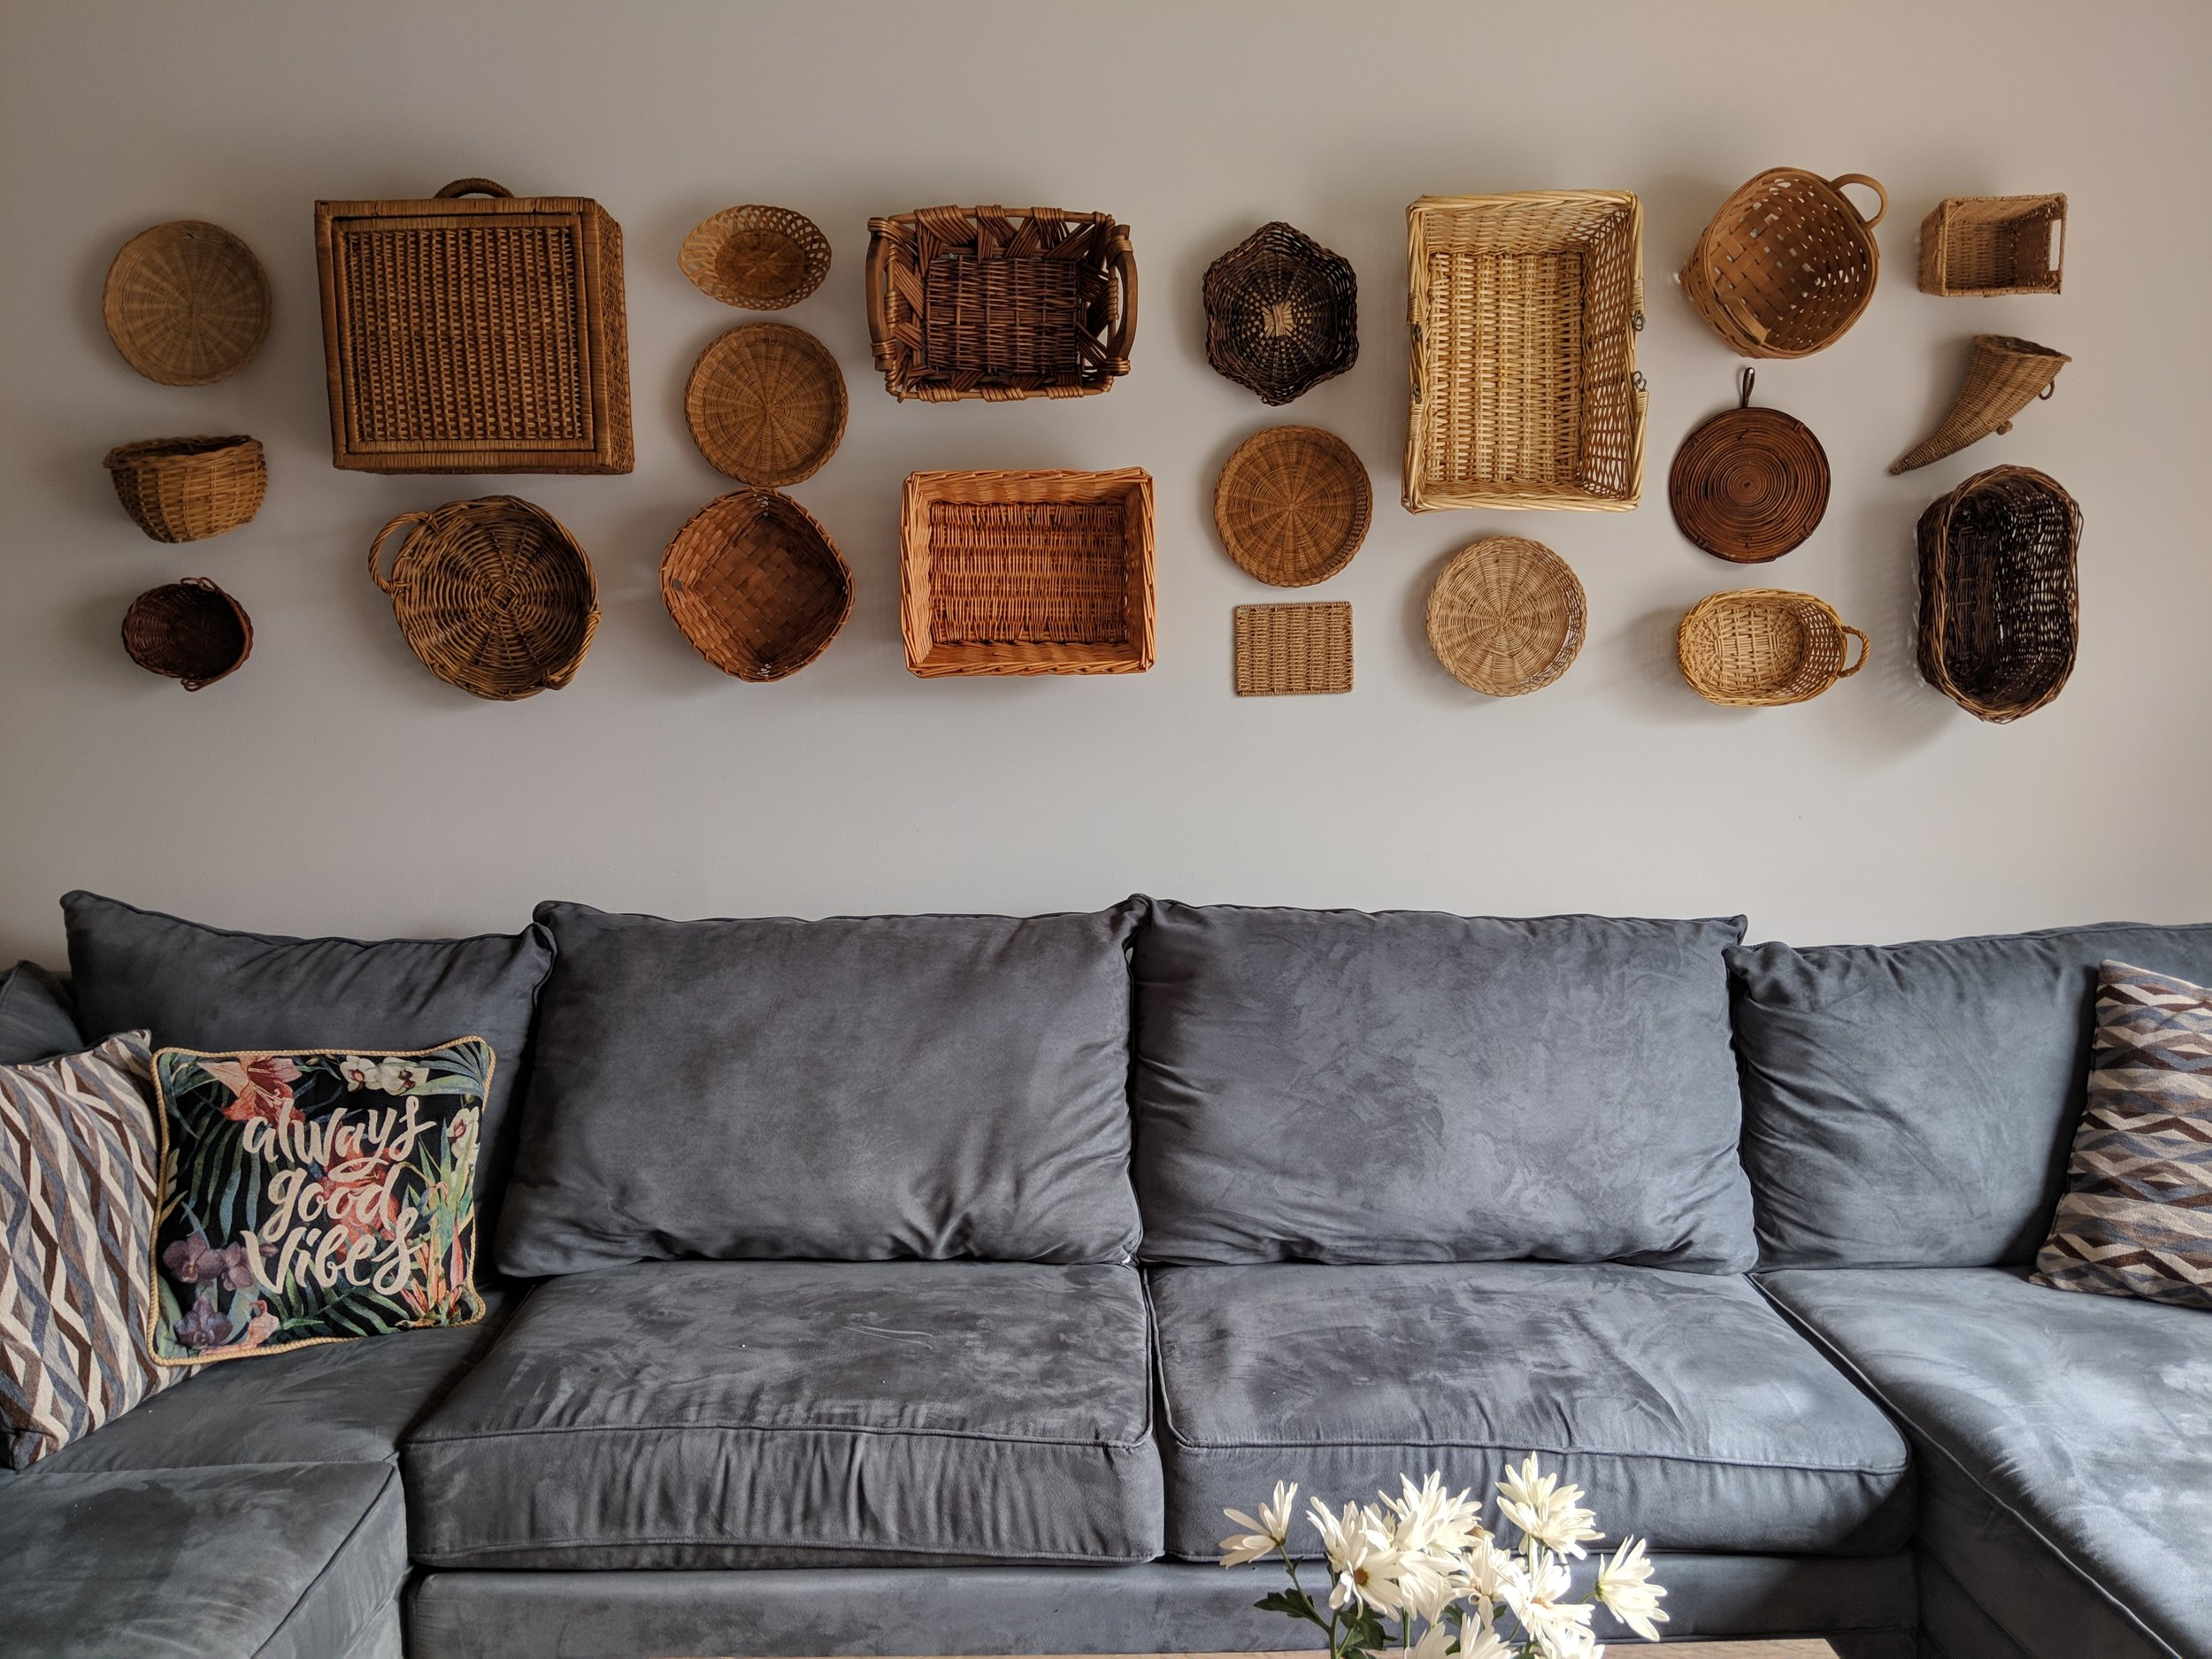 7. Baskets - Every corner of my house has a basket — all sizes, shapes, colors. I just love the tones and textures. I don't remember how much each cost individually, but the basket wall above the couch was less than $20 (in a single trip!).